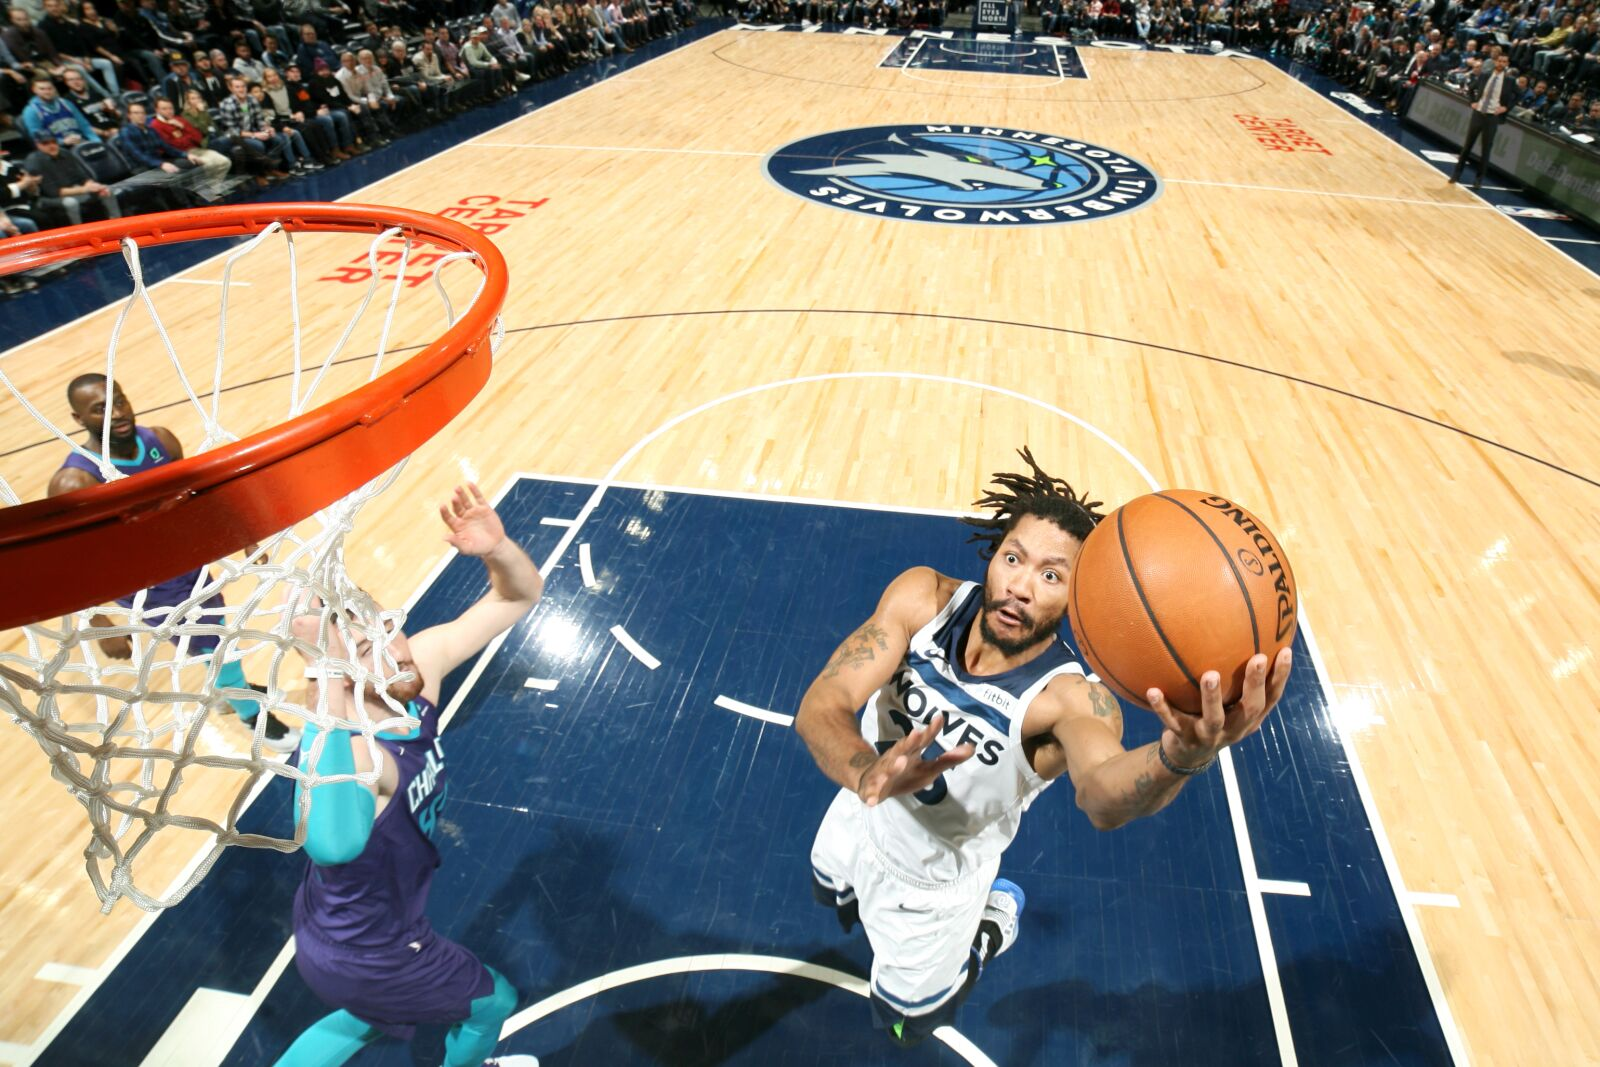 Minnesota Timberwolves: Derrick Rose has a shot at a 50-45-90 season